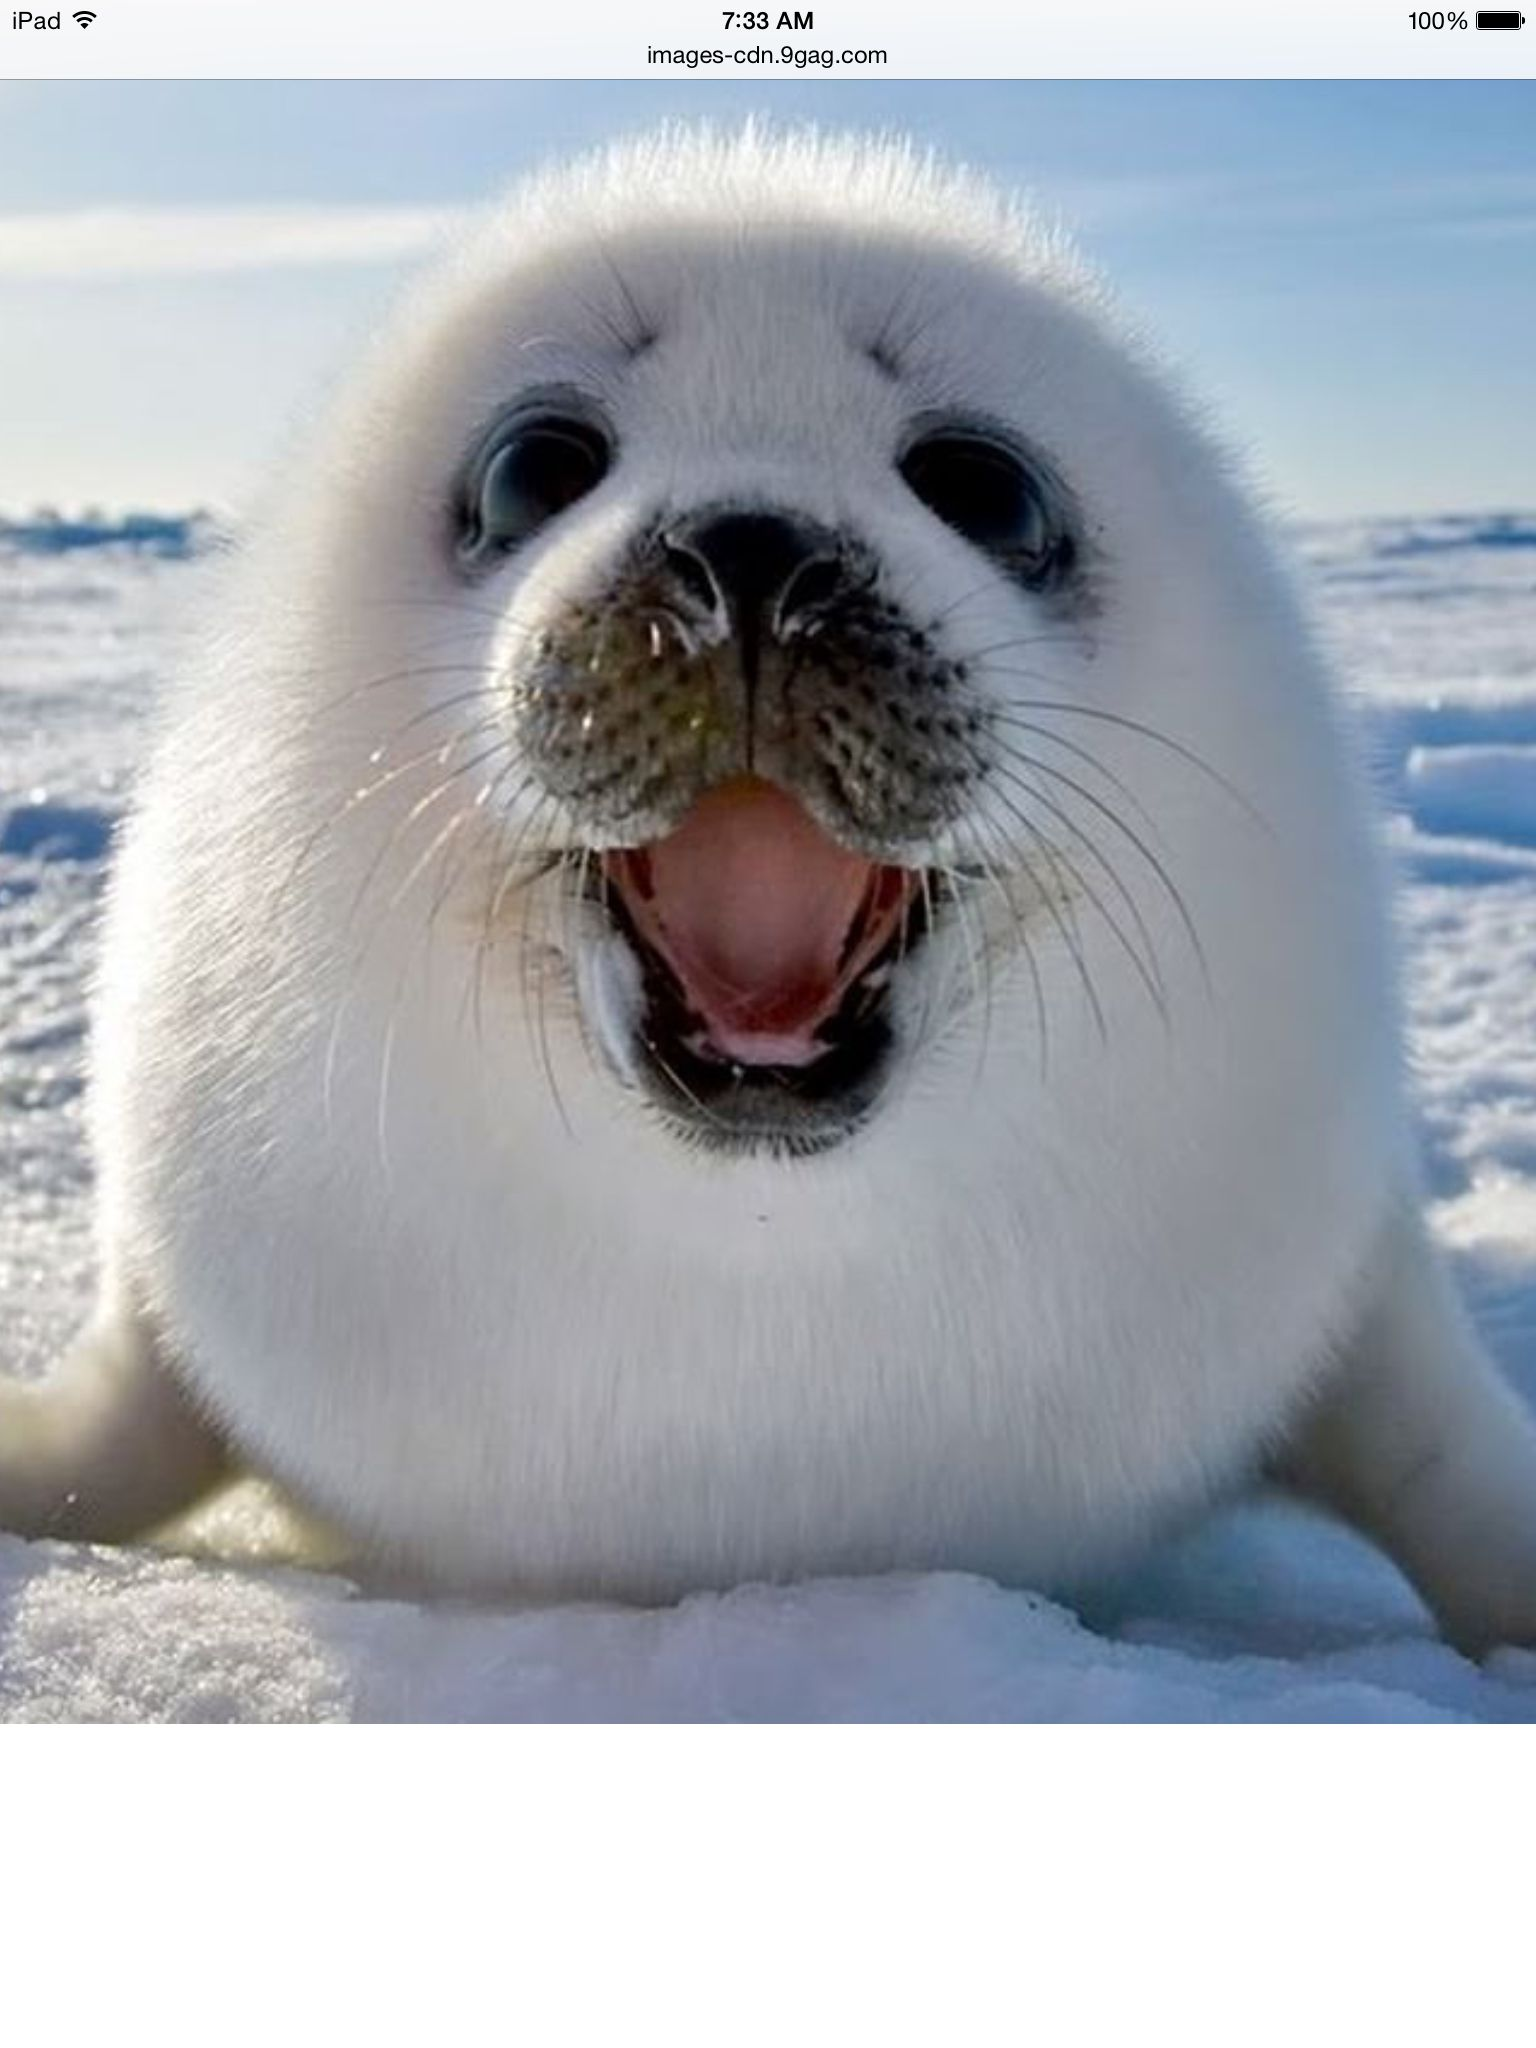 This is a cute and funny baby seal lost in Antarctica he